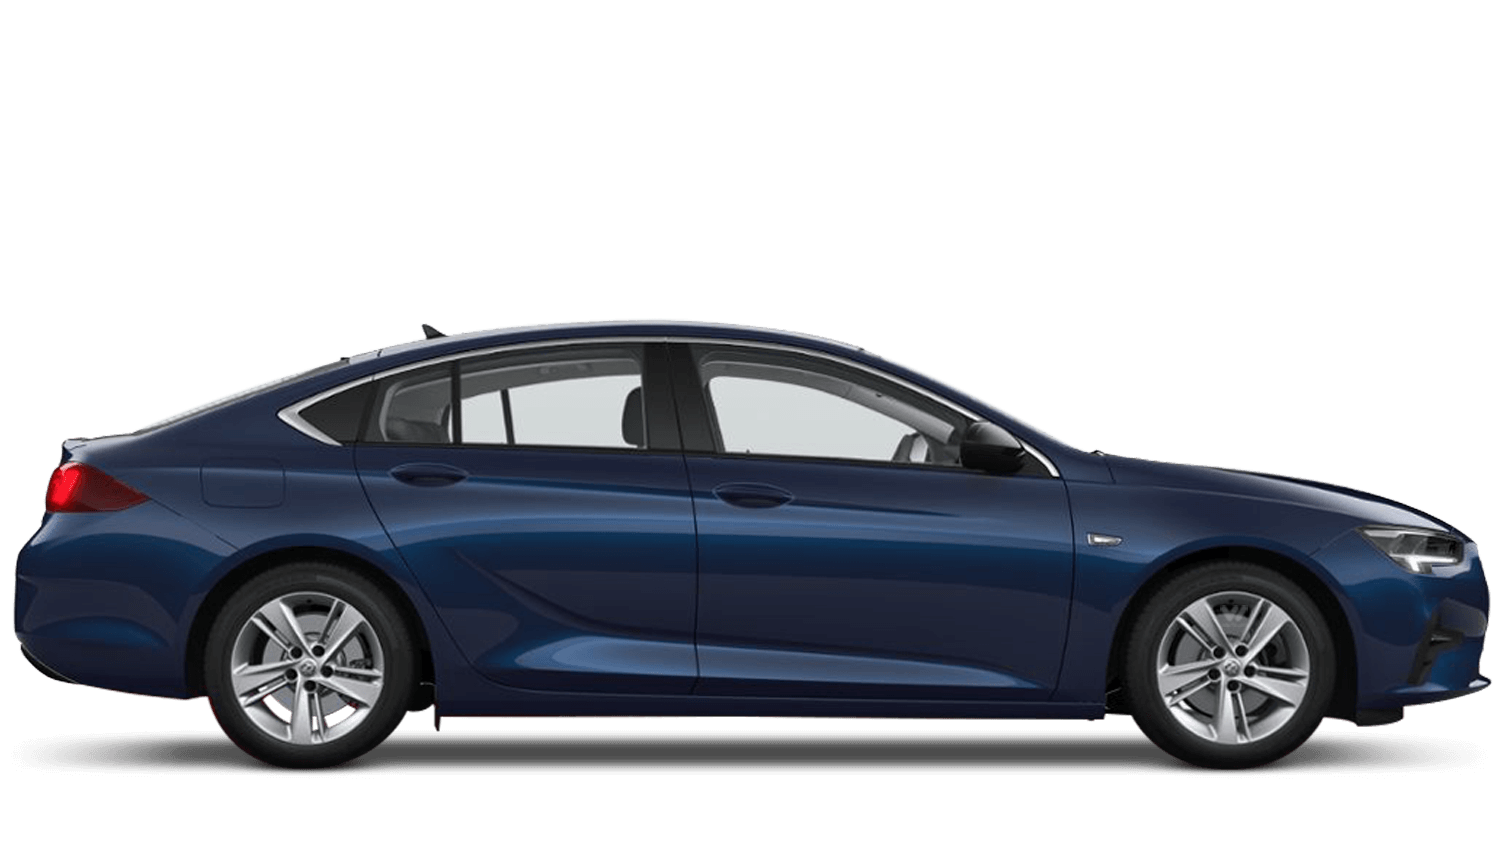 Navy Blue (Metallic) Vauxhall Insignia New